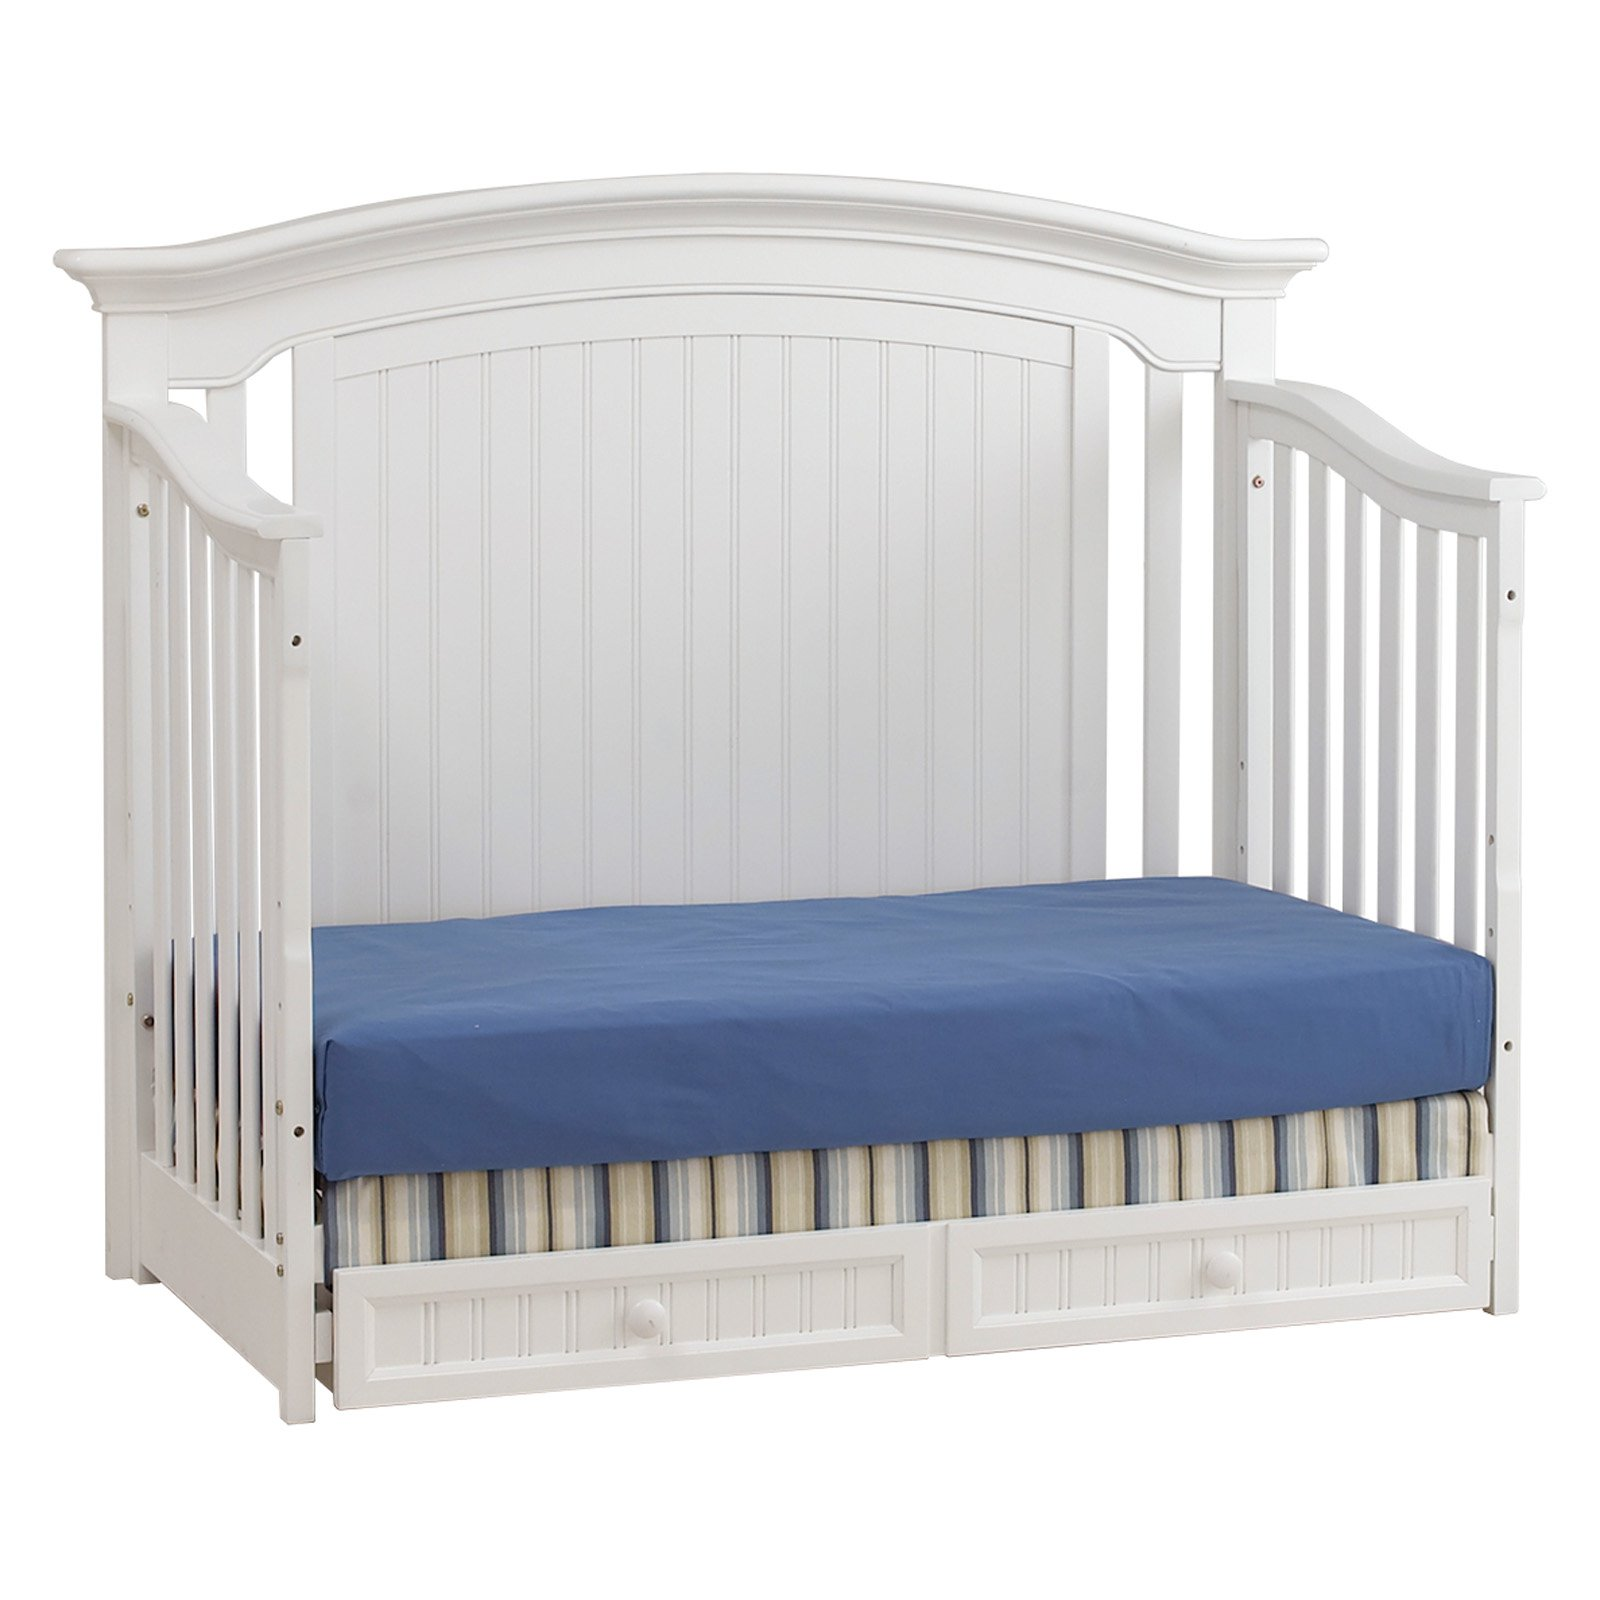 Suite Bebe Winchester Full Bed Conversion Kit by Suite Bebe